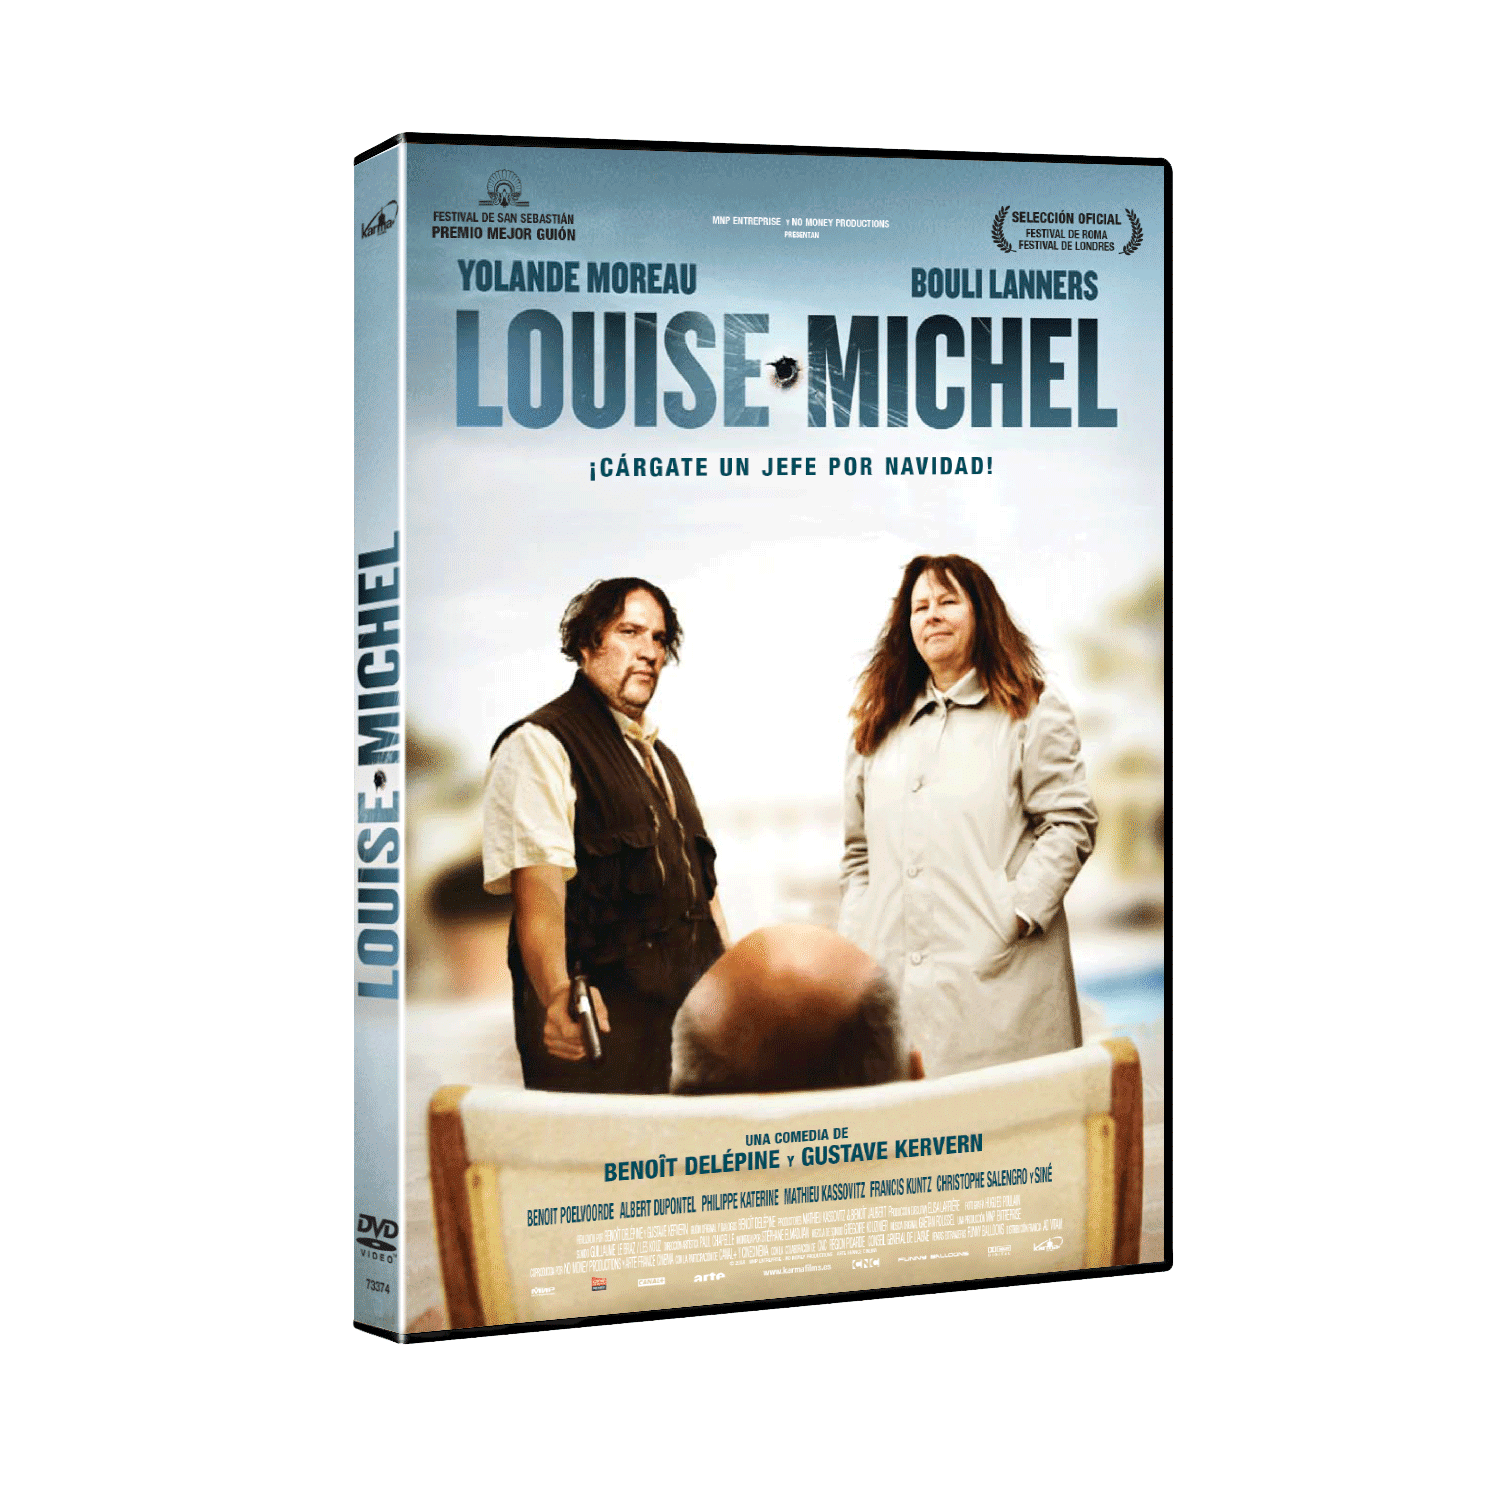 louise_michel_DVD